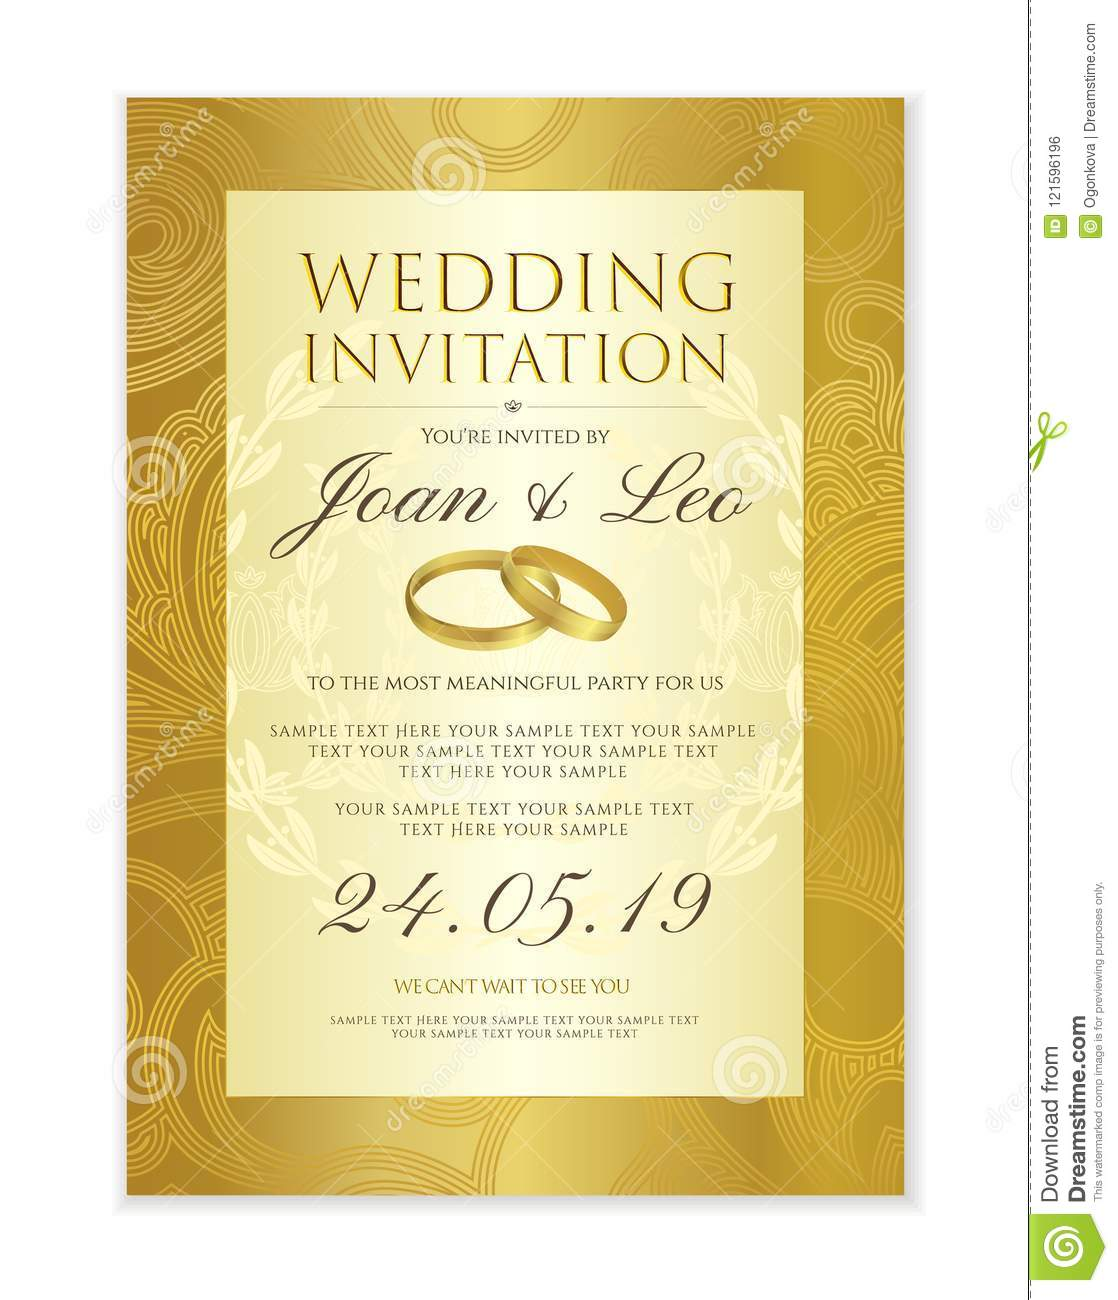 Wedding Invitation Design Template Save The Date Card